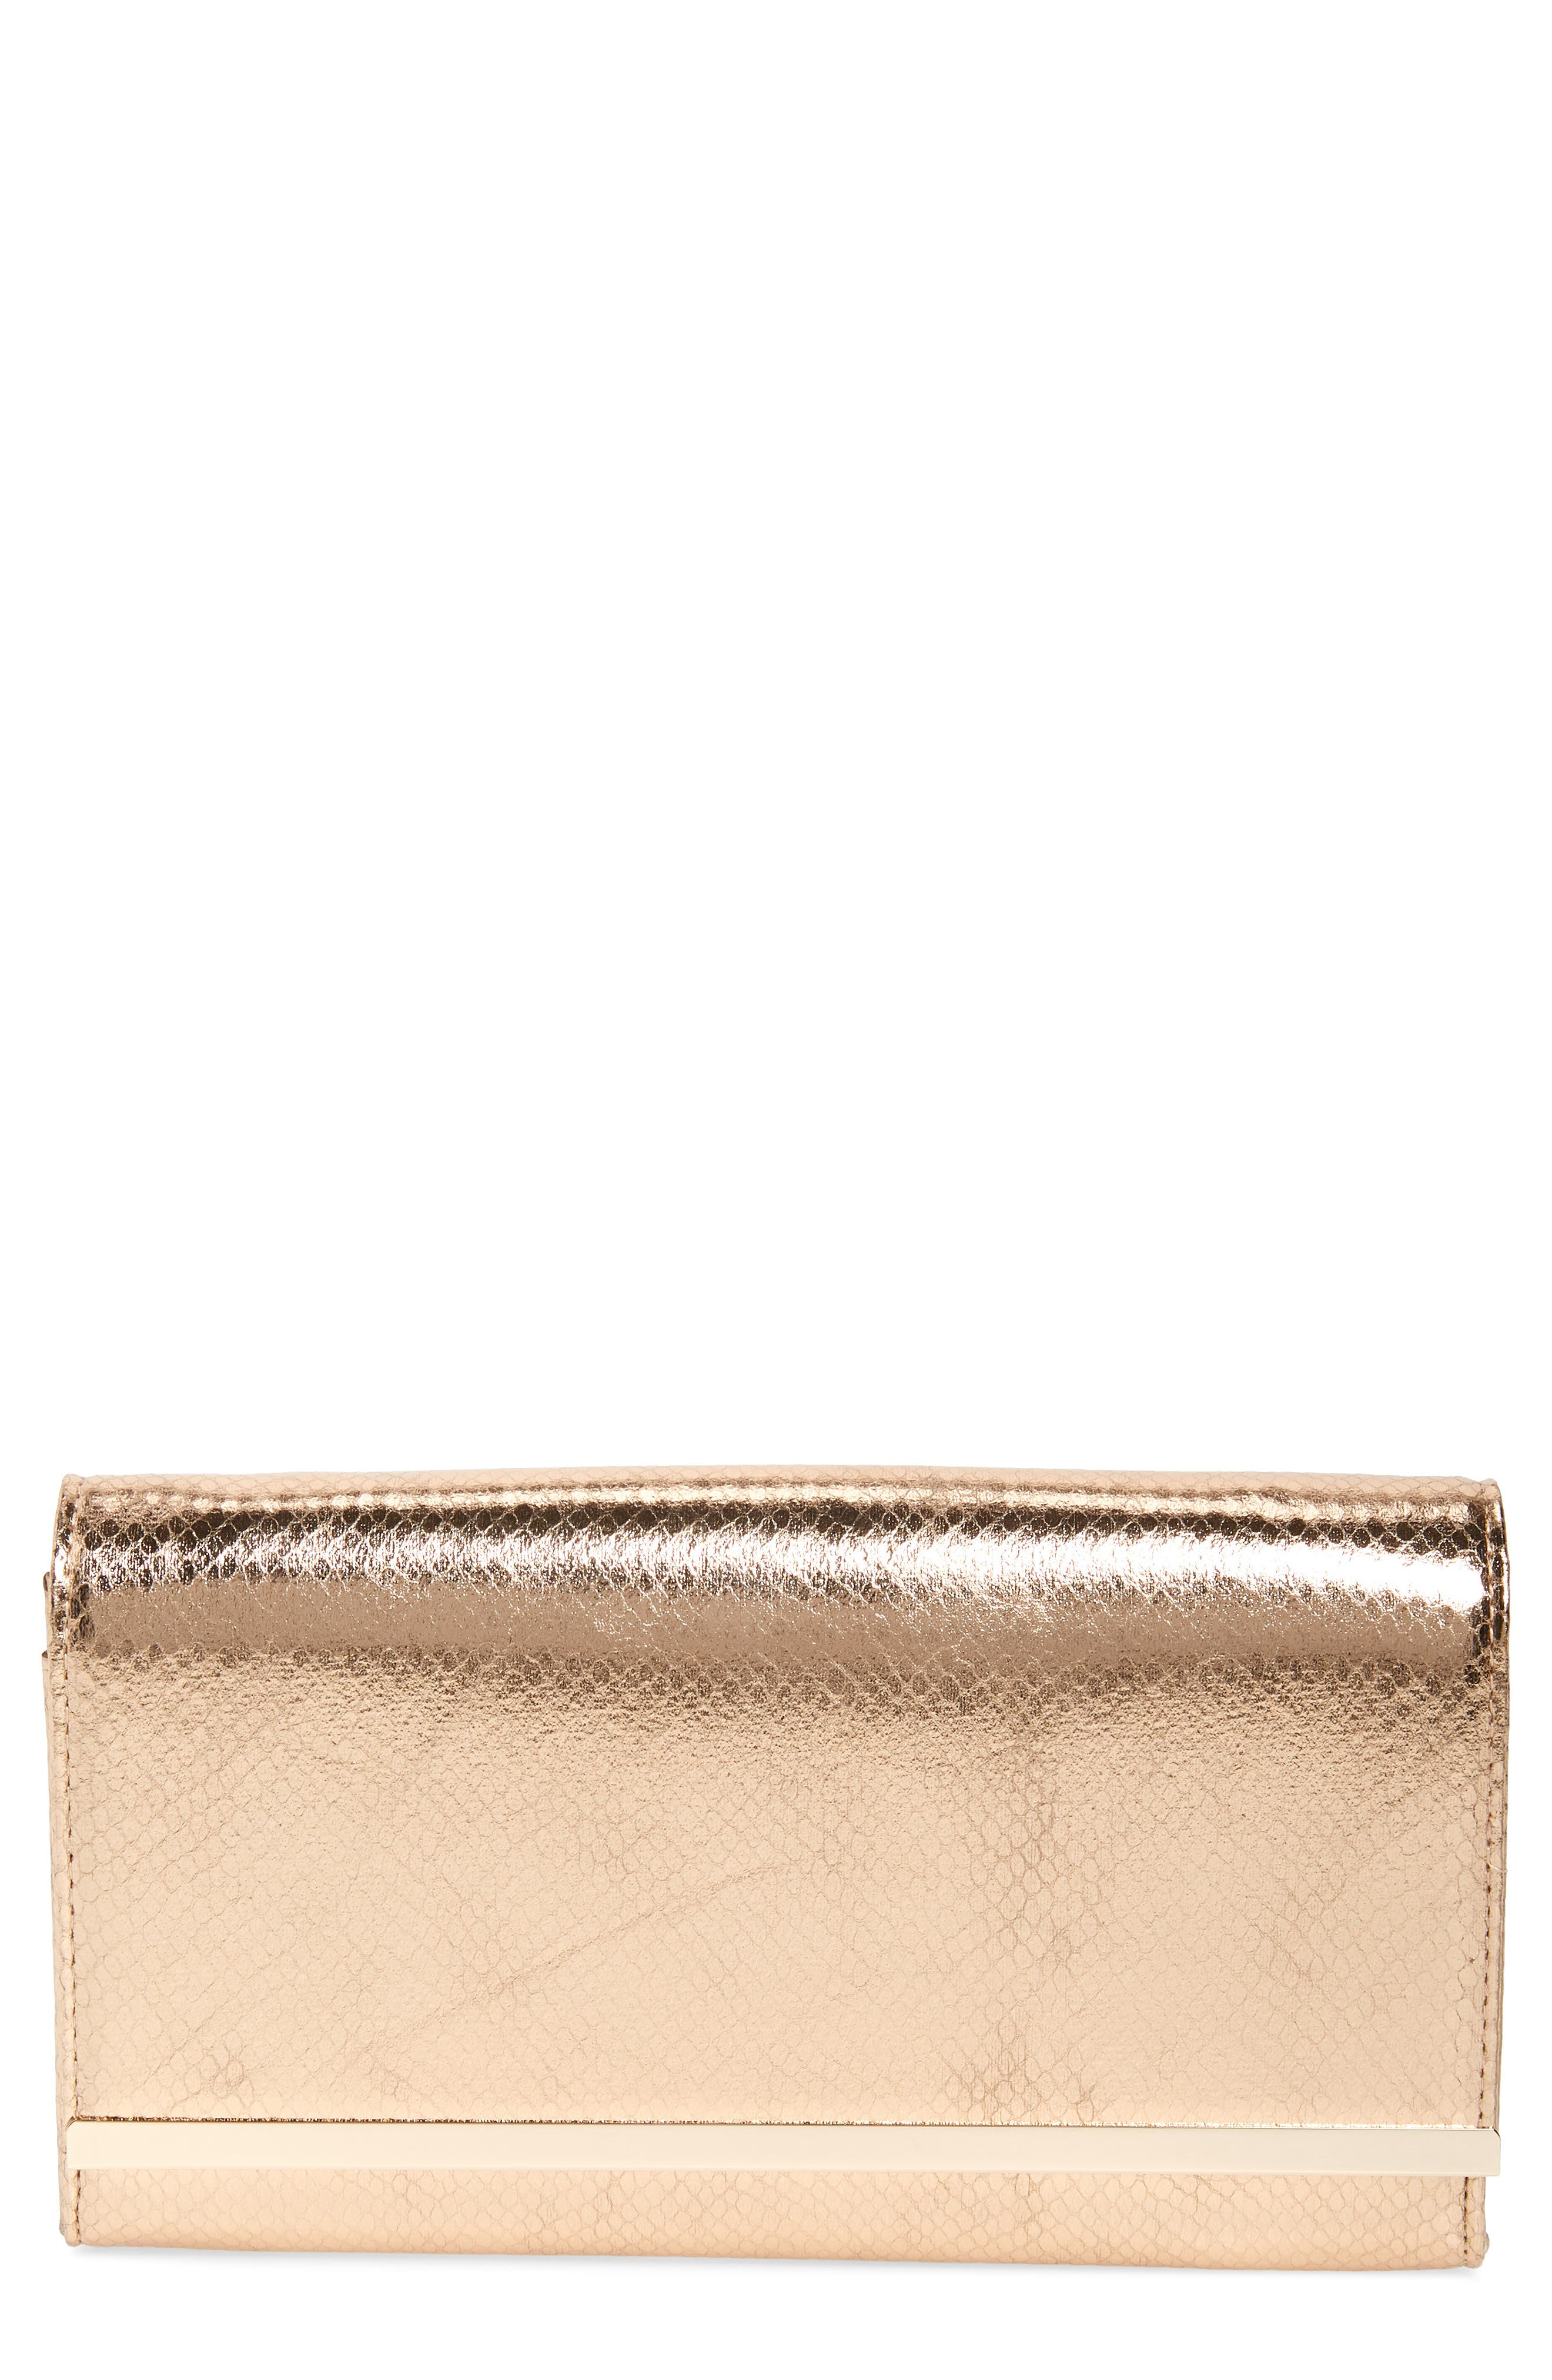 Metallic Snake-Embossed Faux Leather Bar Clutch,                         Main,                         color, ROSE GOLD